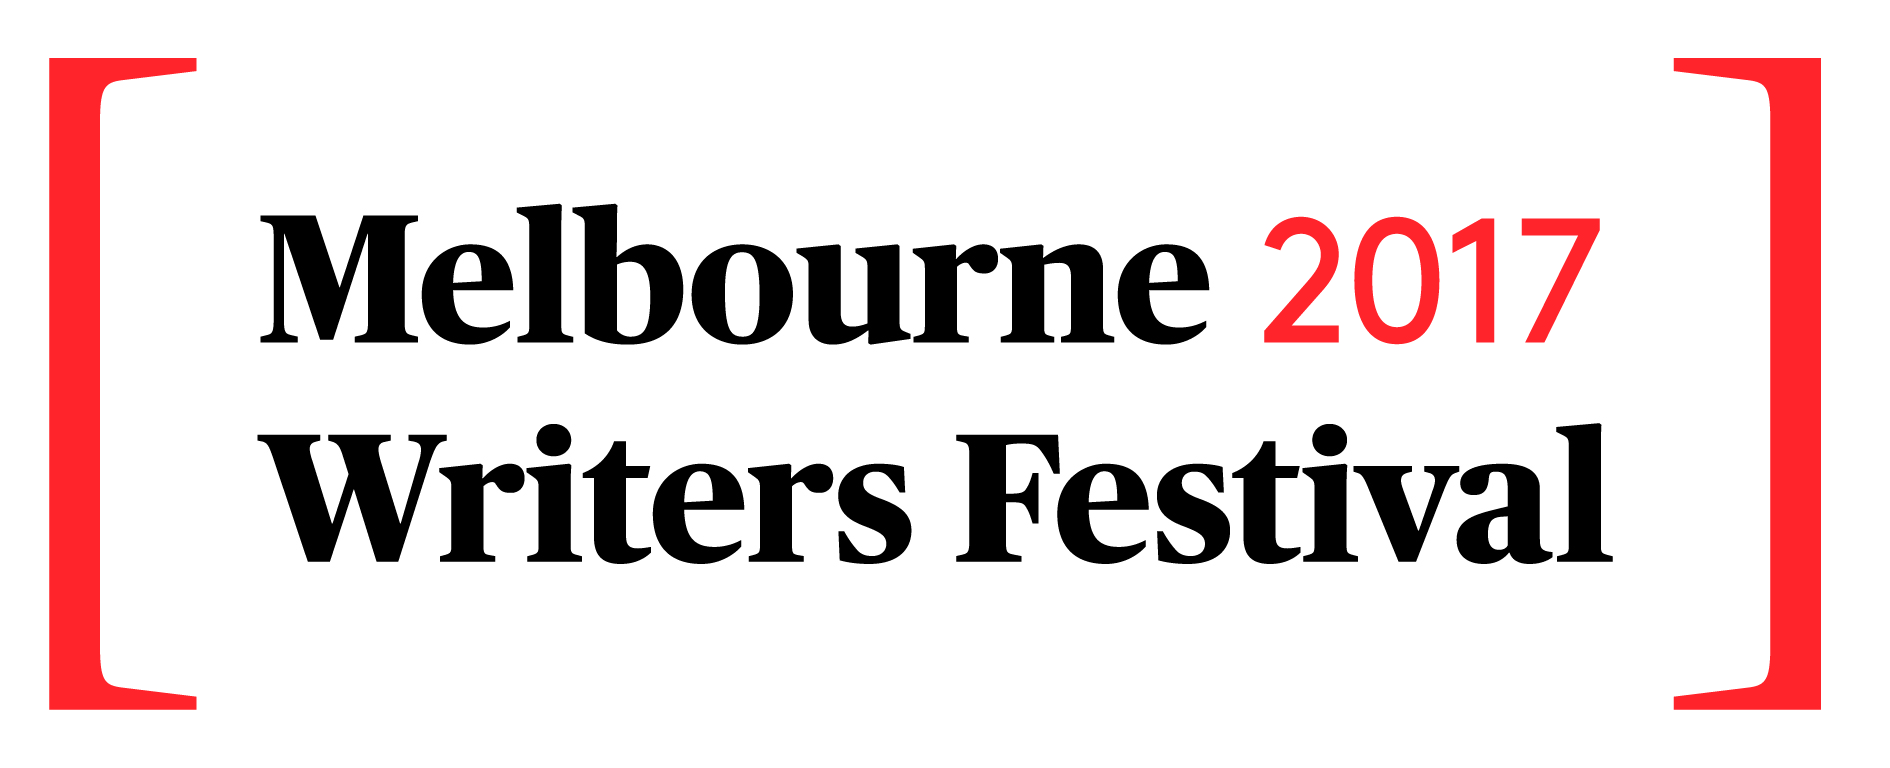 Melbourne Writers Festival 2017 logo